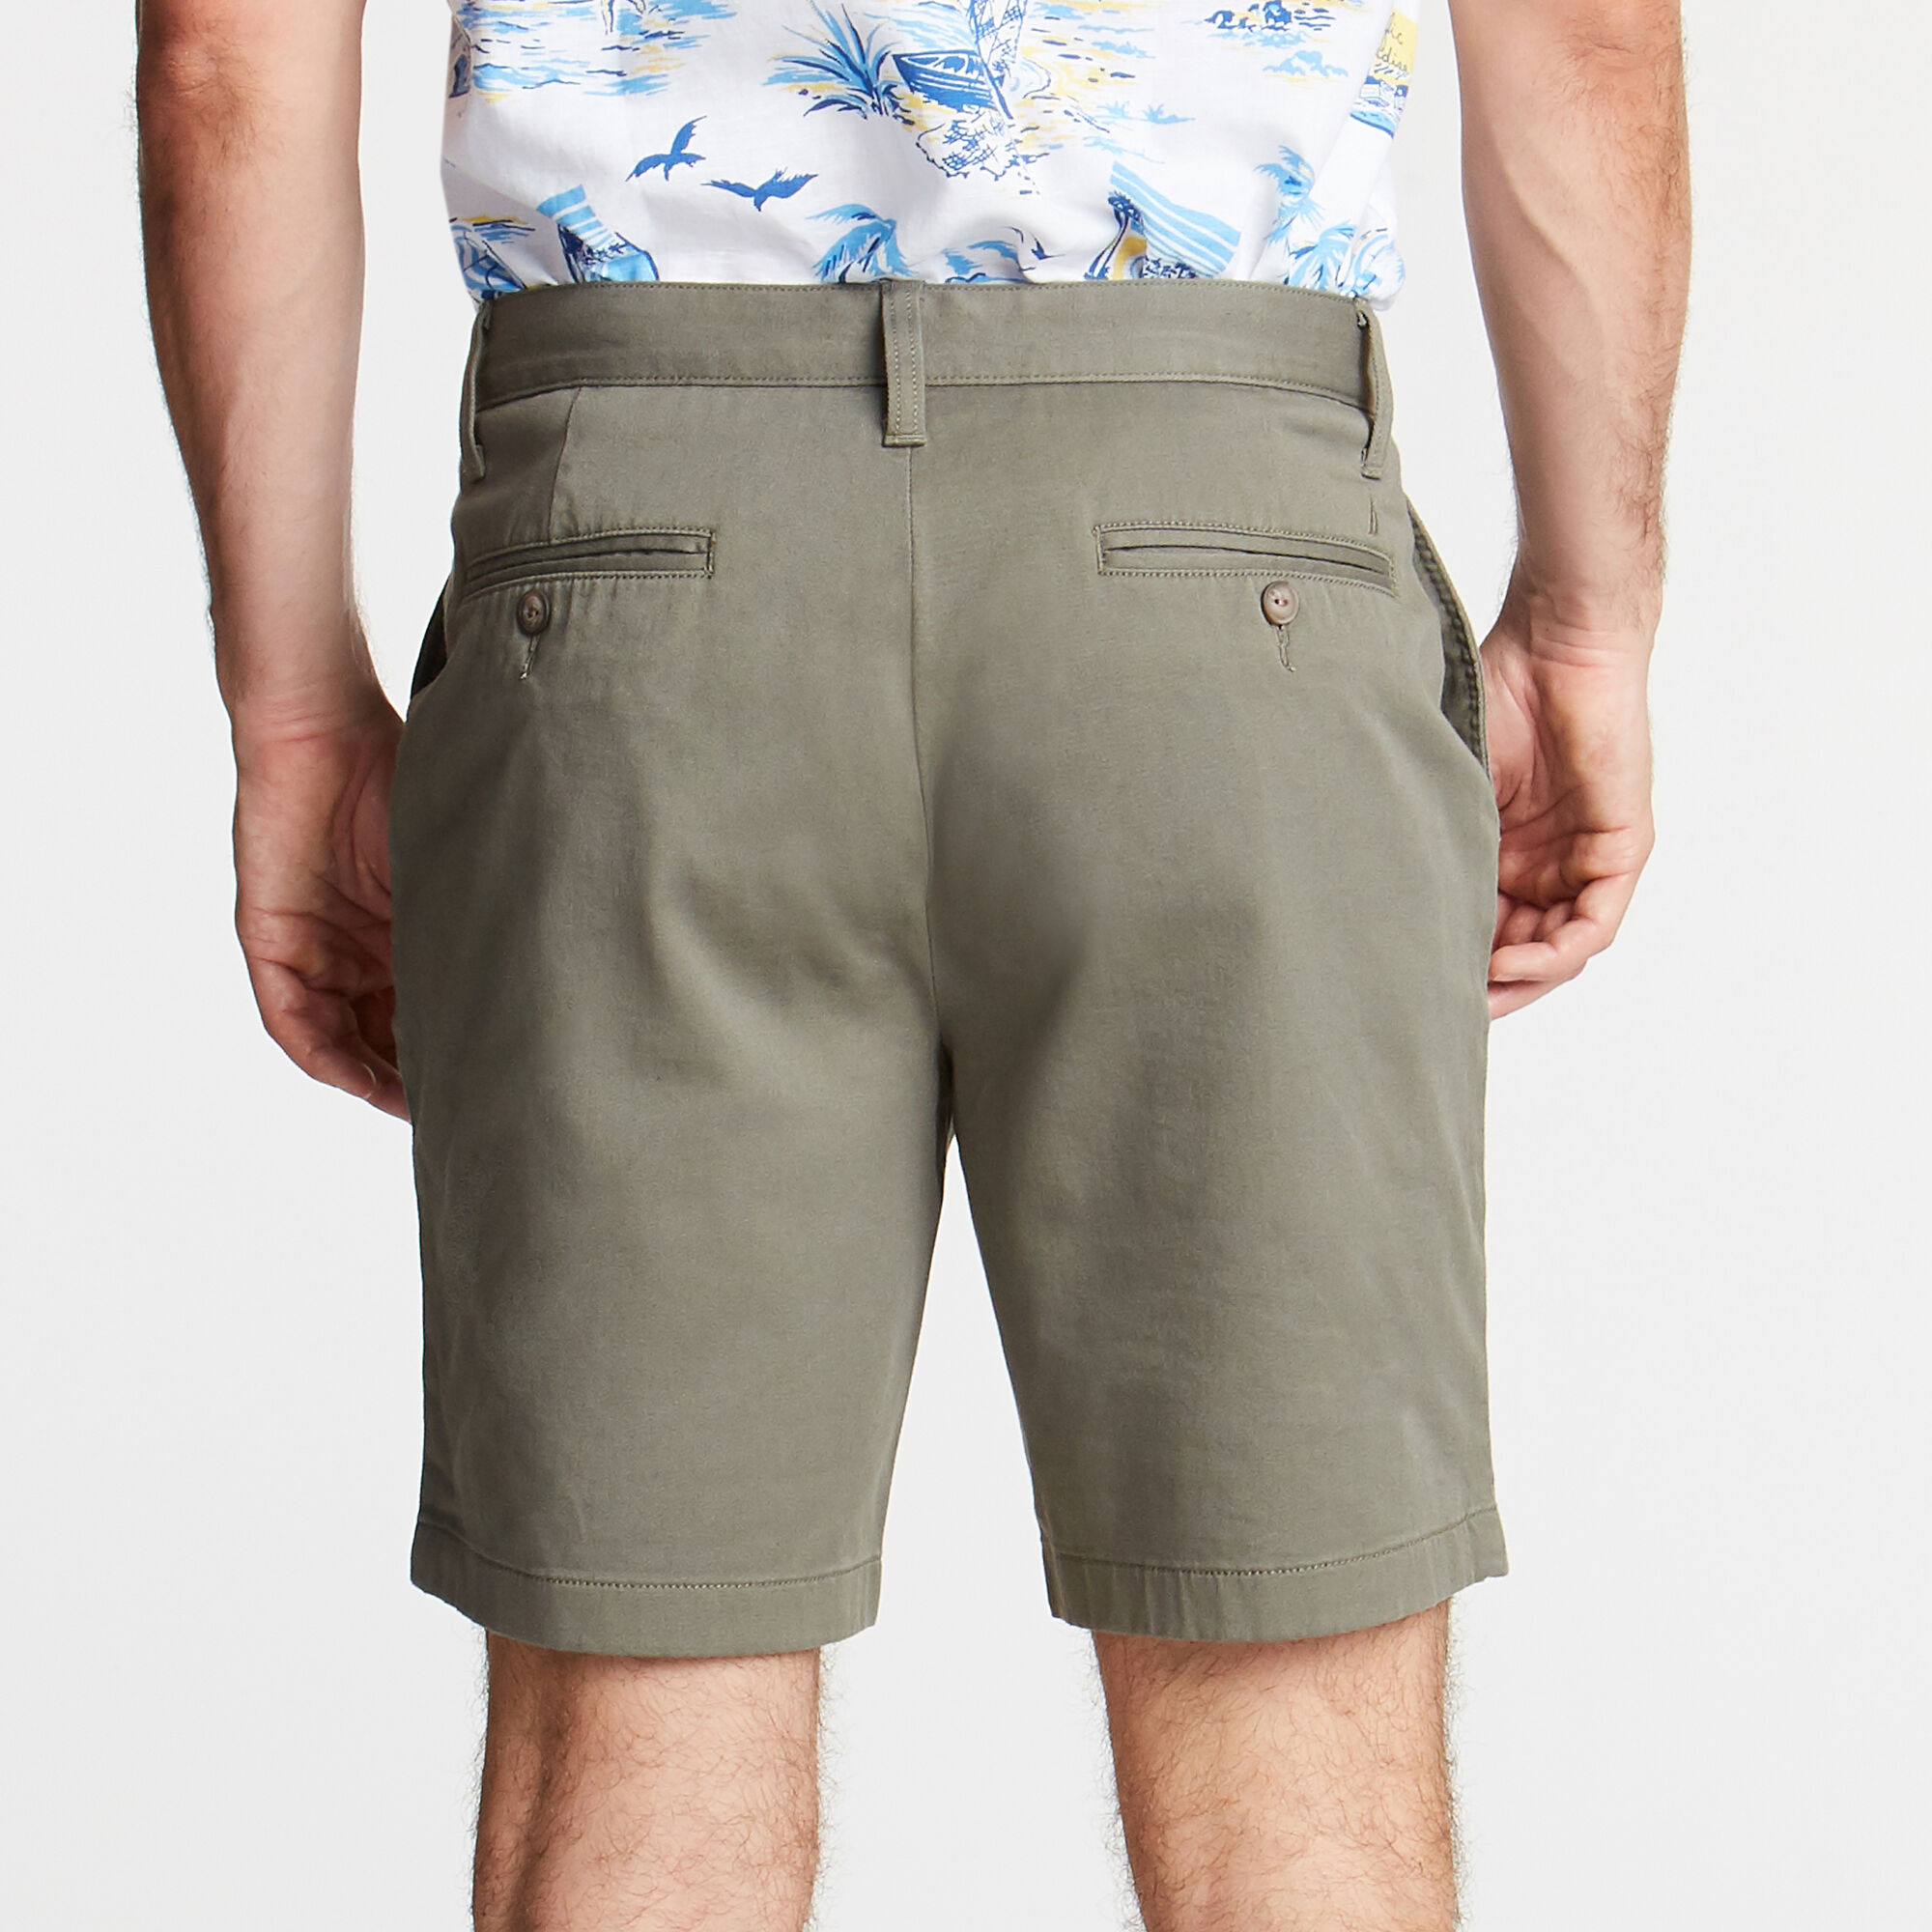 Nautica-Mens-8-5-034-Classic-Fit-Deck-Short-With-Stretch thumbnail 29